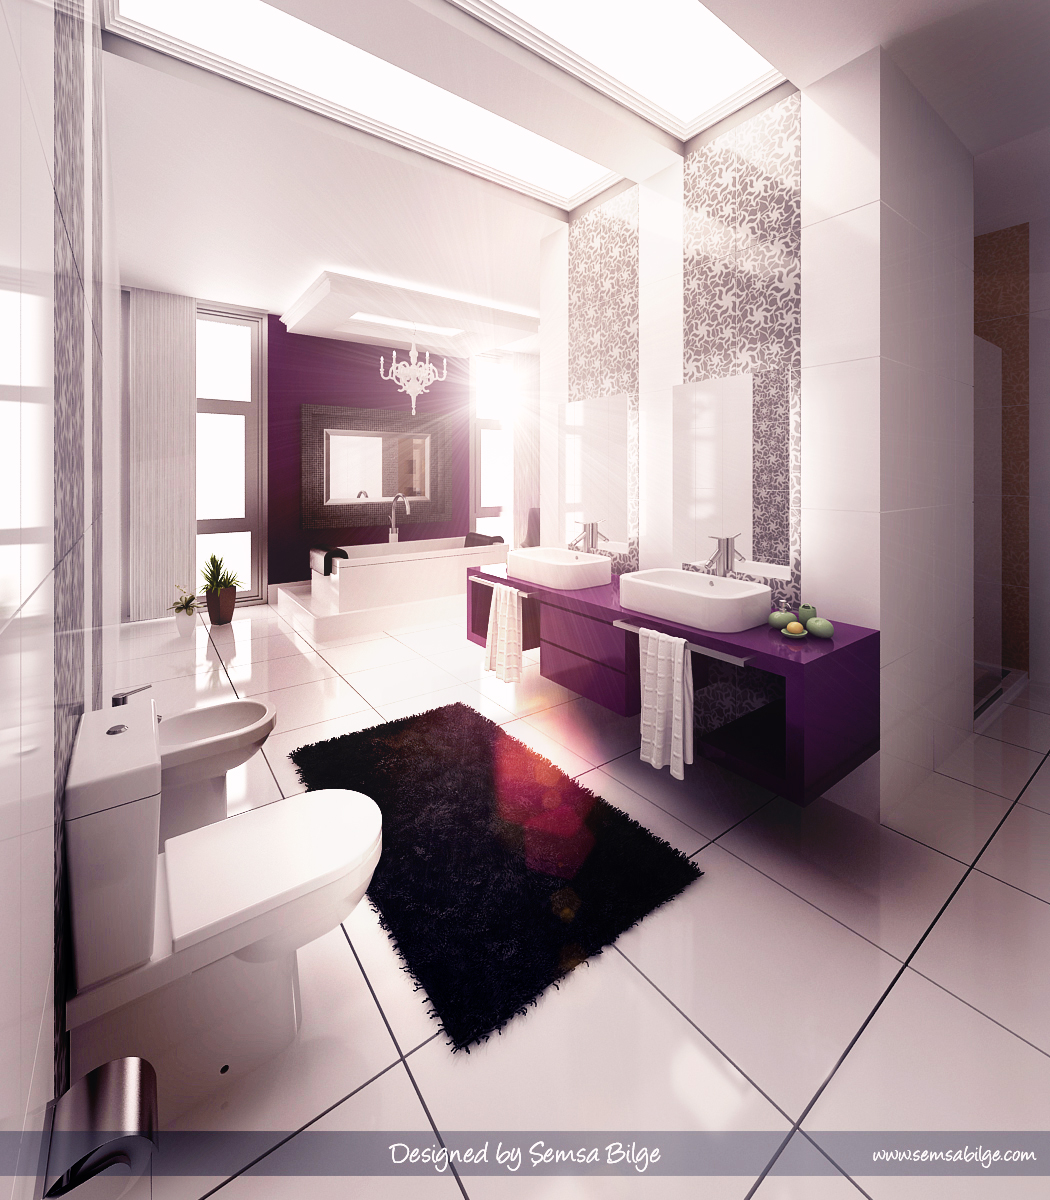 Inspiring bathroom designs for the soul for Bathroom interiors designs